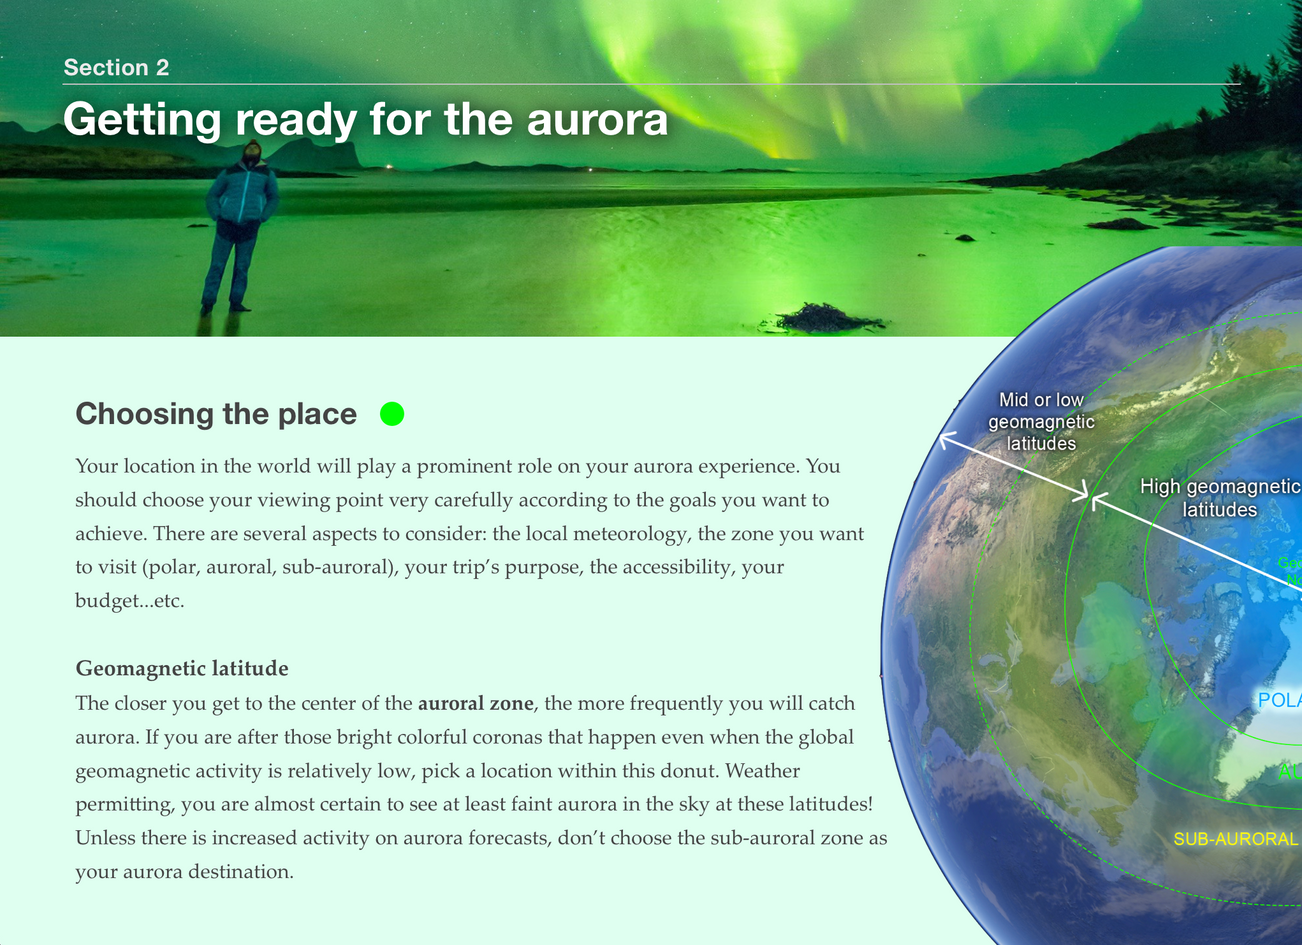 In 'Getting ready for the aurora', we answer the most frequently asked questions people have when they want to see the lights:  - What is the best place? - What is the best time of year? - What is the best time of the night?   We also included DO's and DONT's of aurora chasing. We reveal tips and tricks that we have learned after many years of chasing the Green Lady.